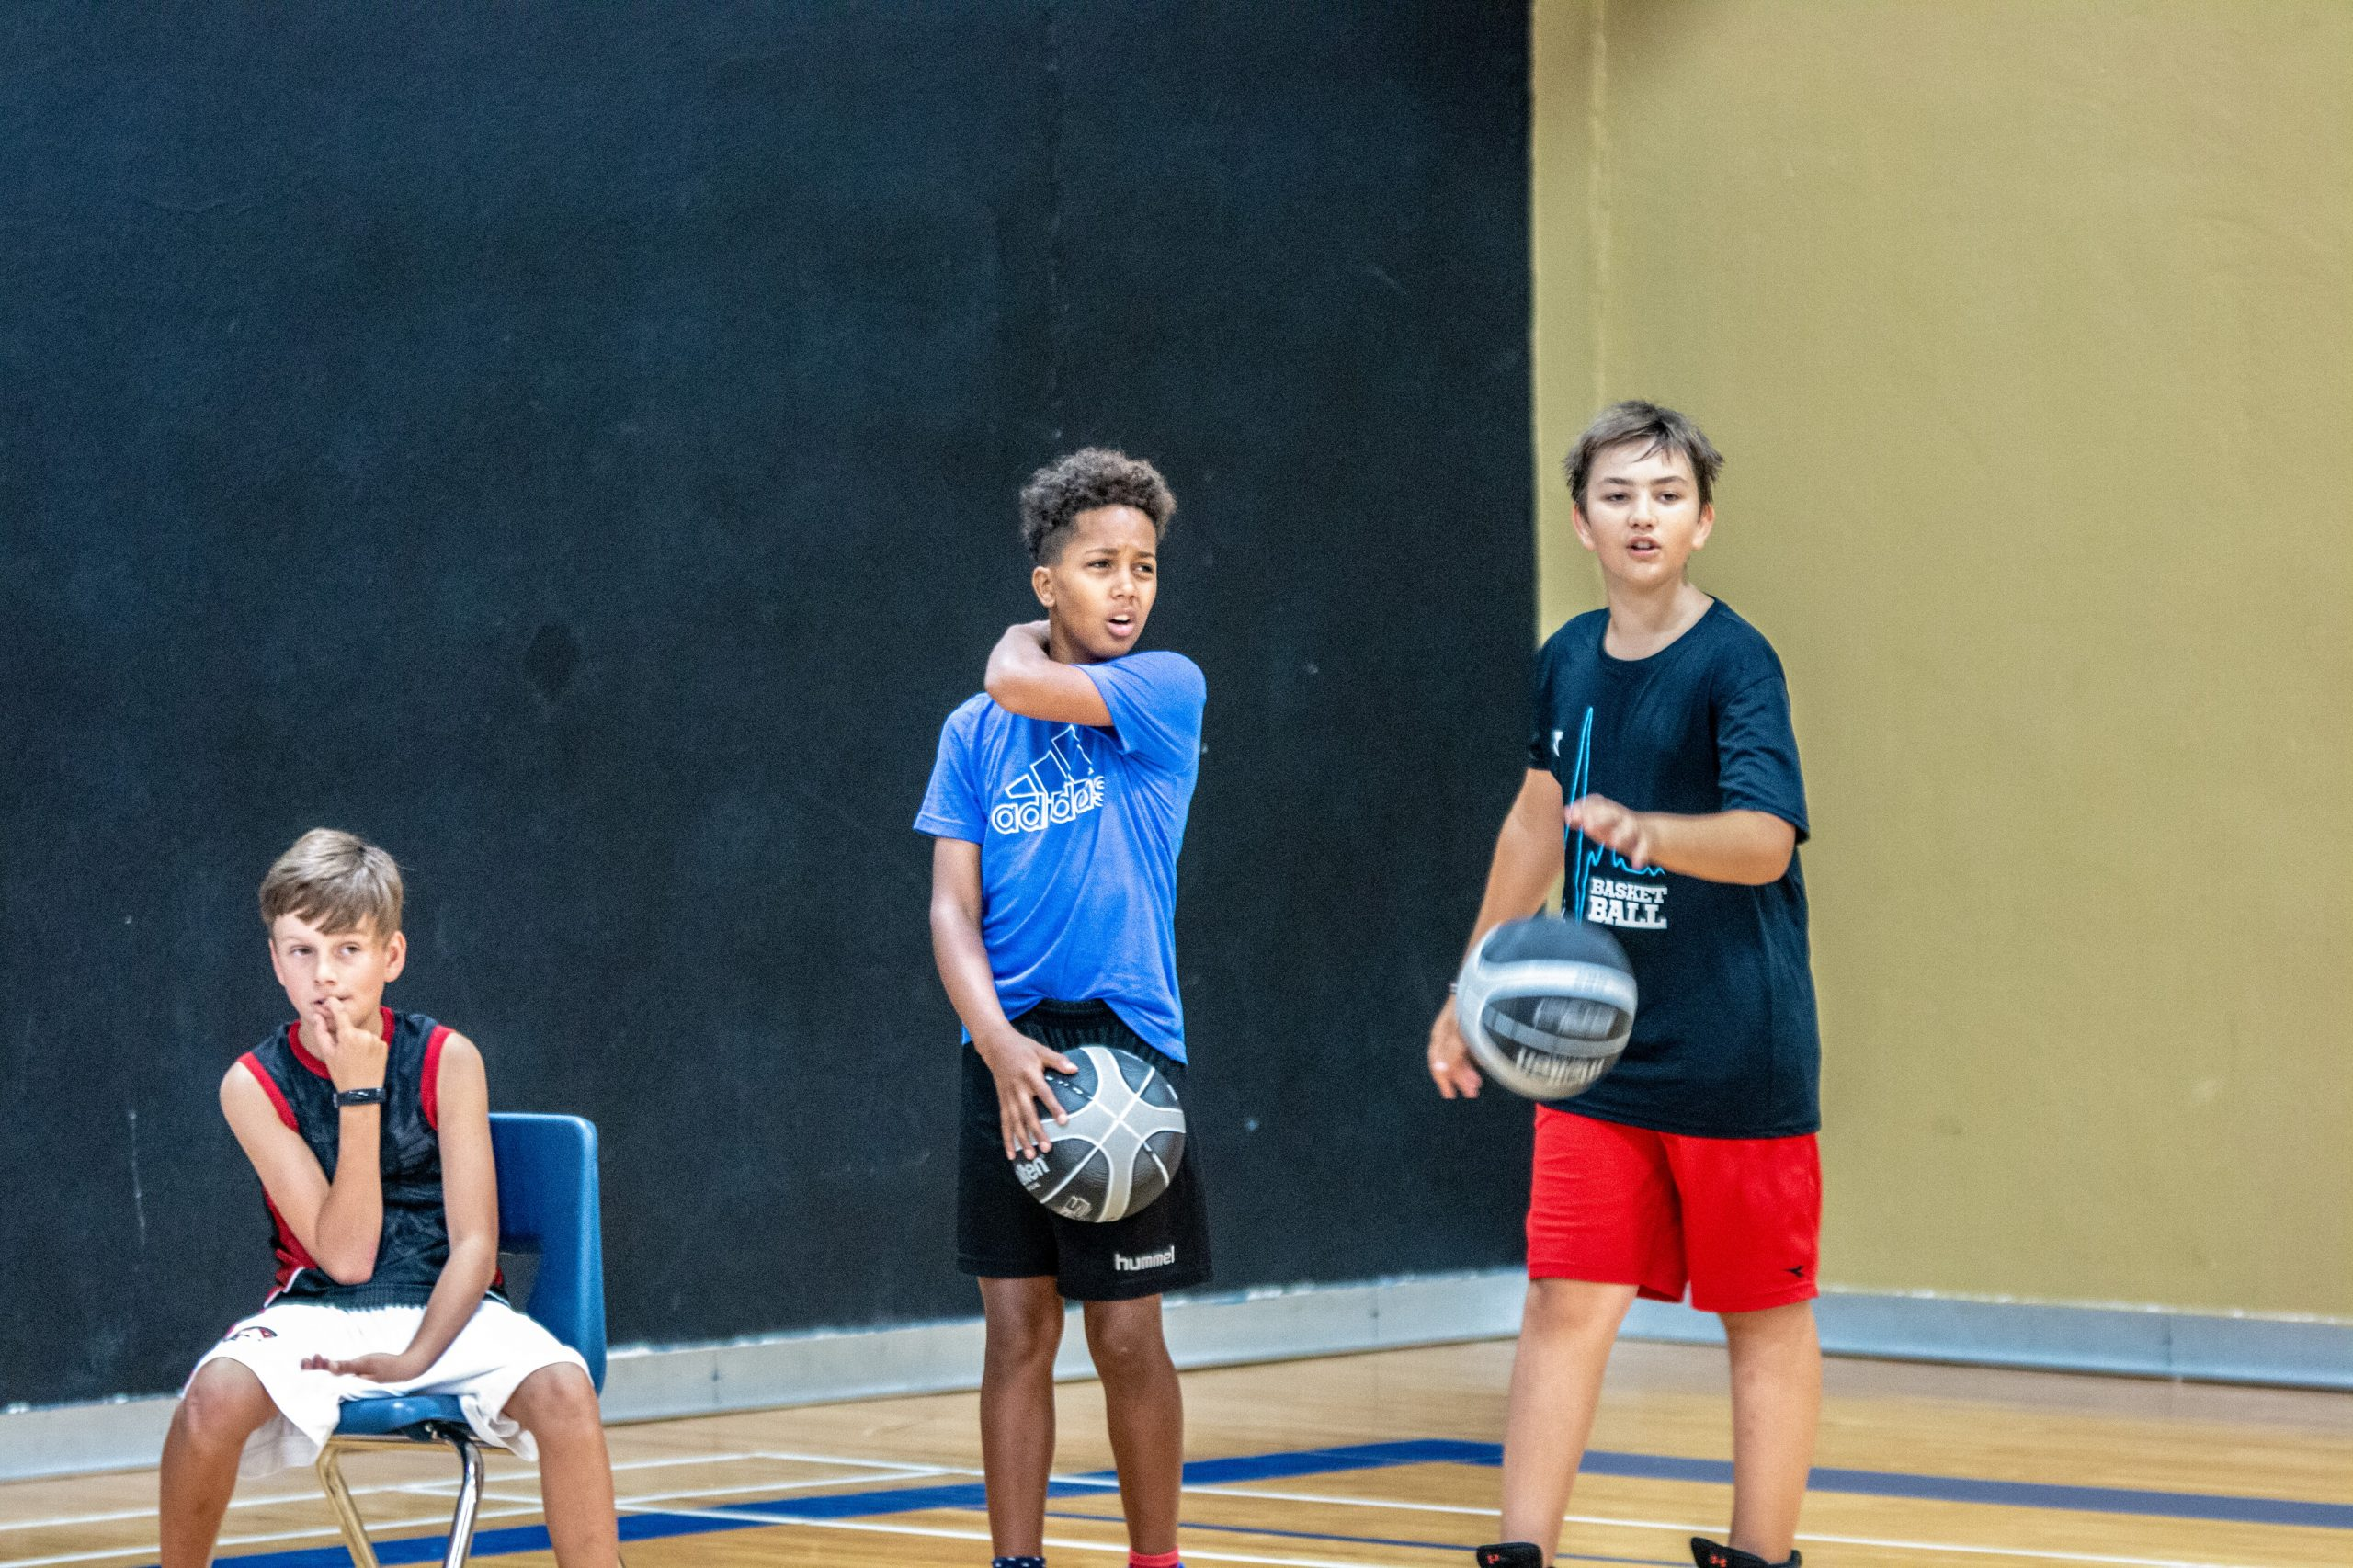 Camp basketball VITAL 2019 - 180